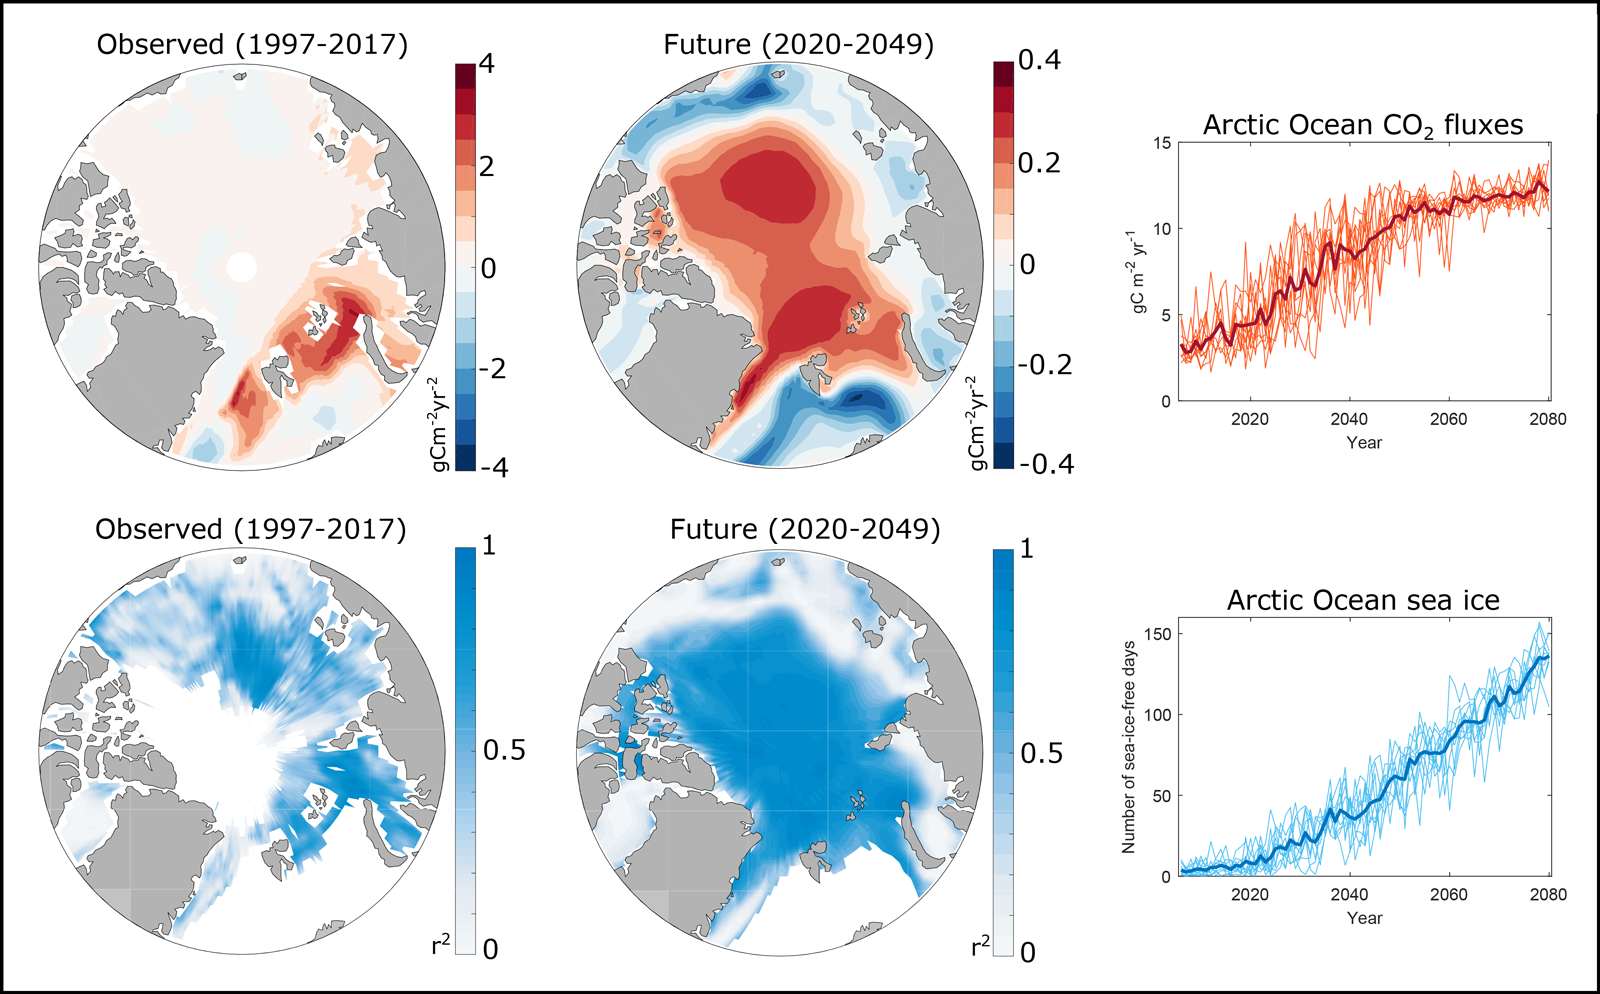 Observed trends and projections for mean CO2 flux and ice-free days in the Arctic Ocean